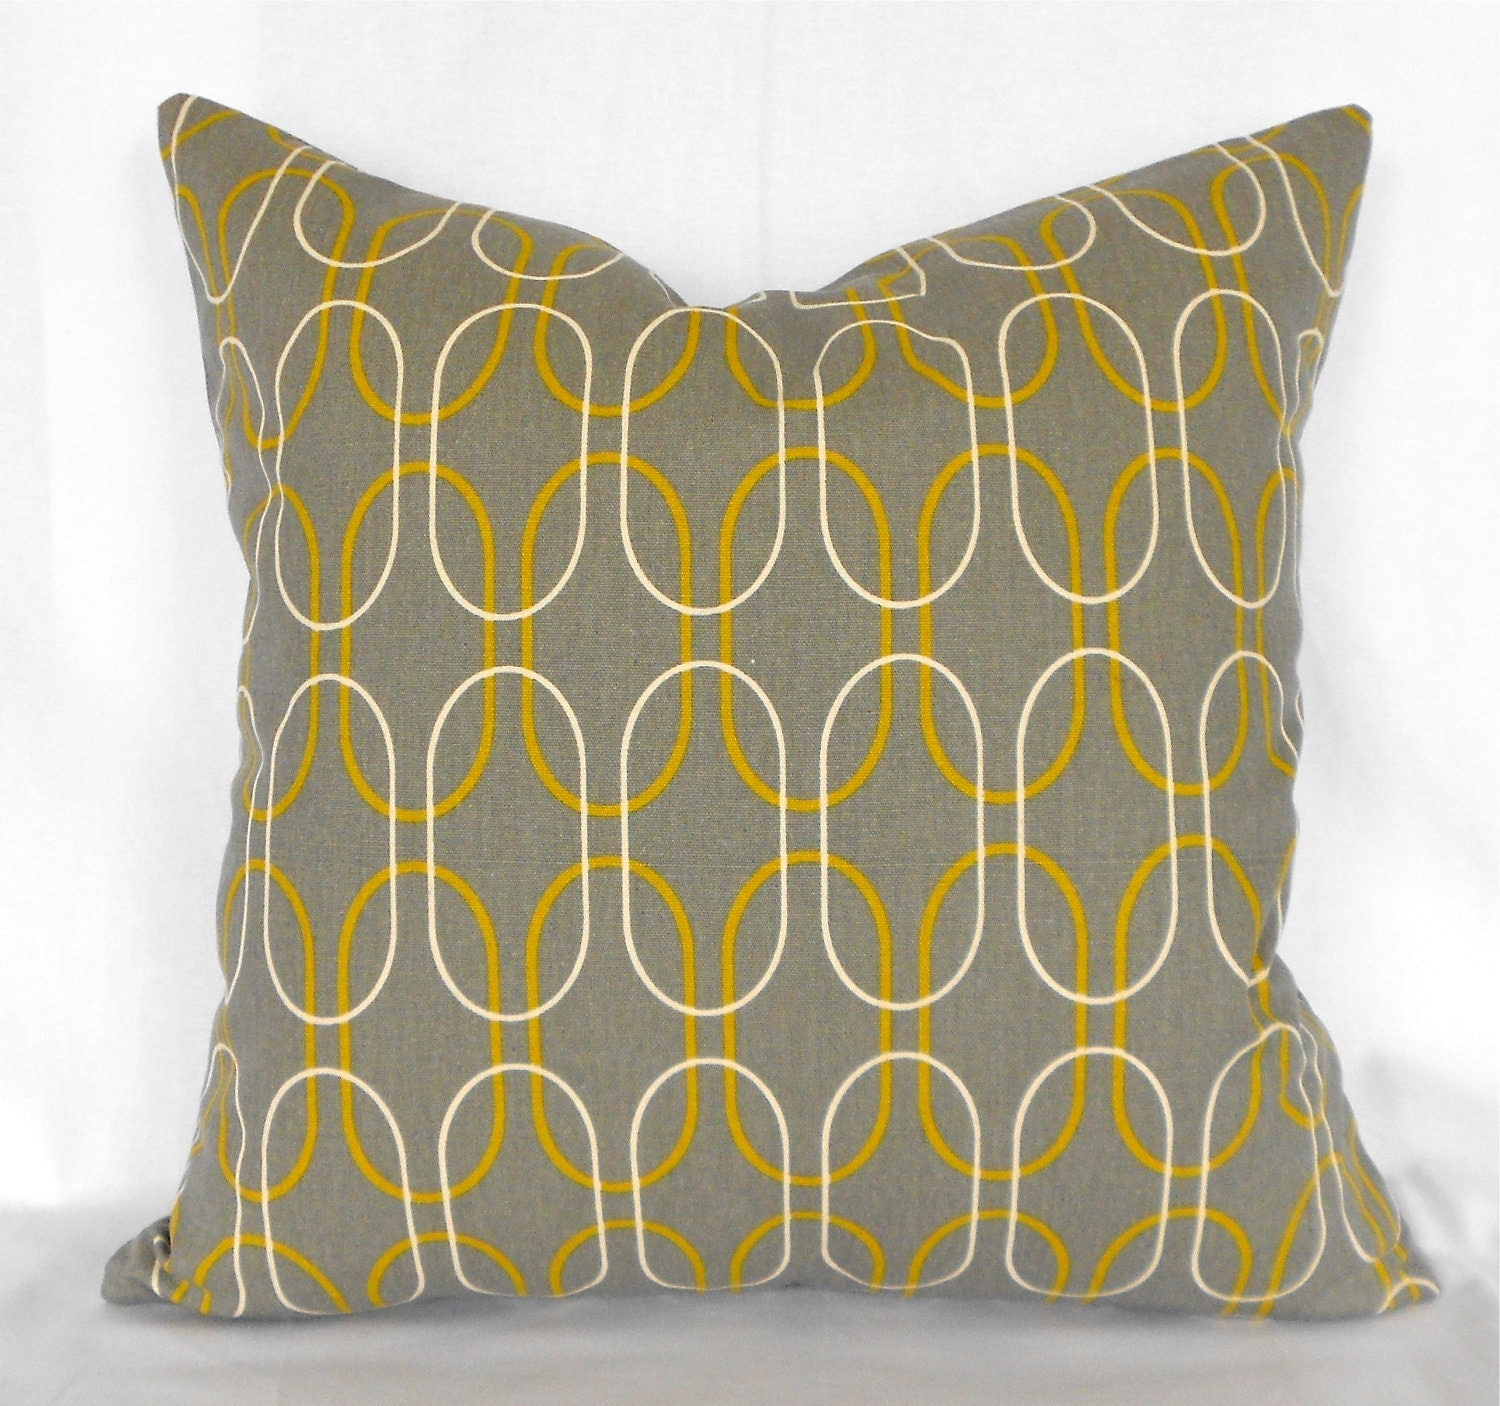 Throw Pillow Cover Measurements : Pillow Covers Decorative Pillows ANY SIZE Pillow Cover Home